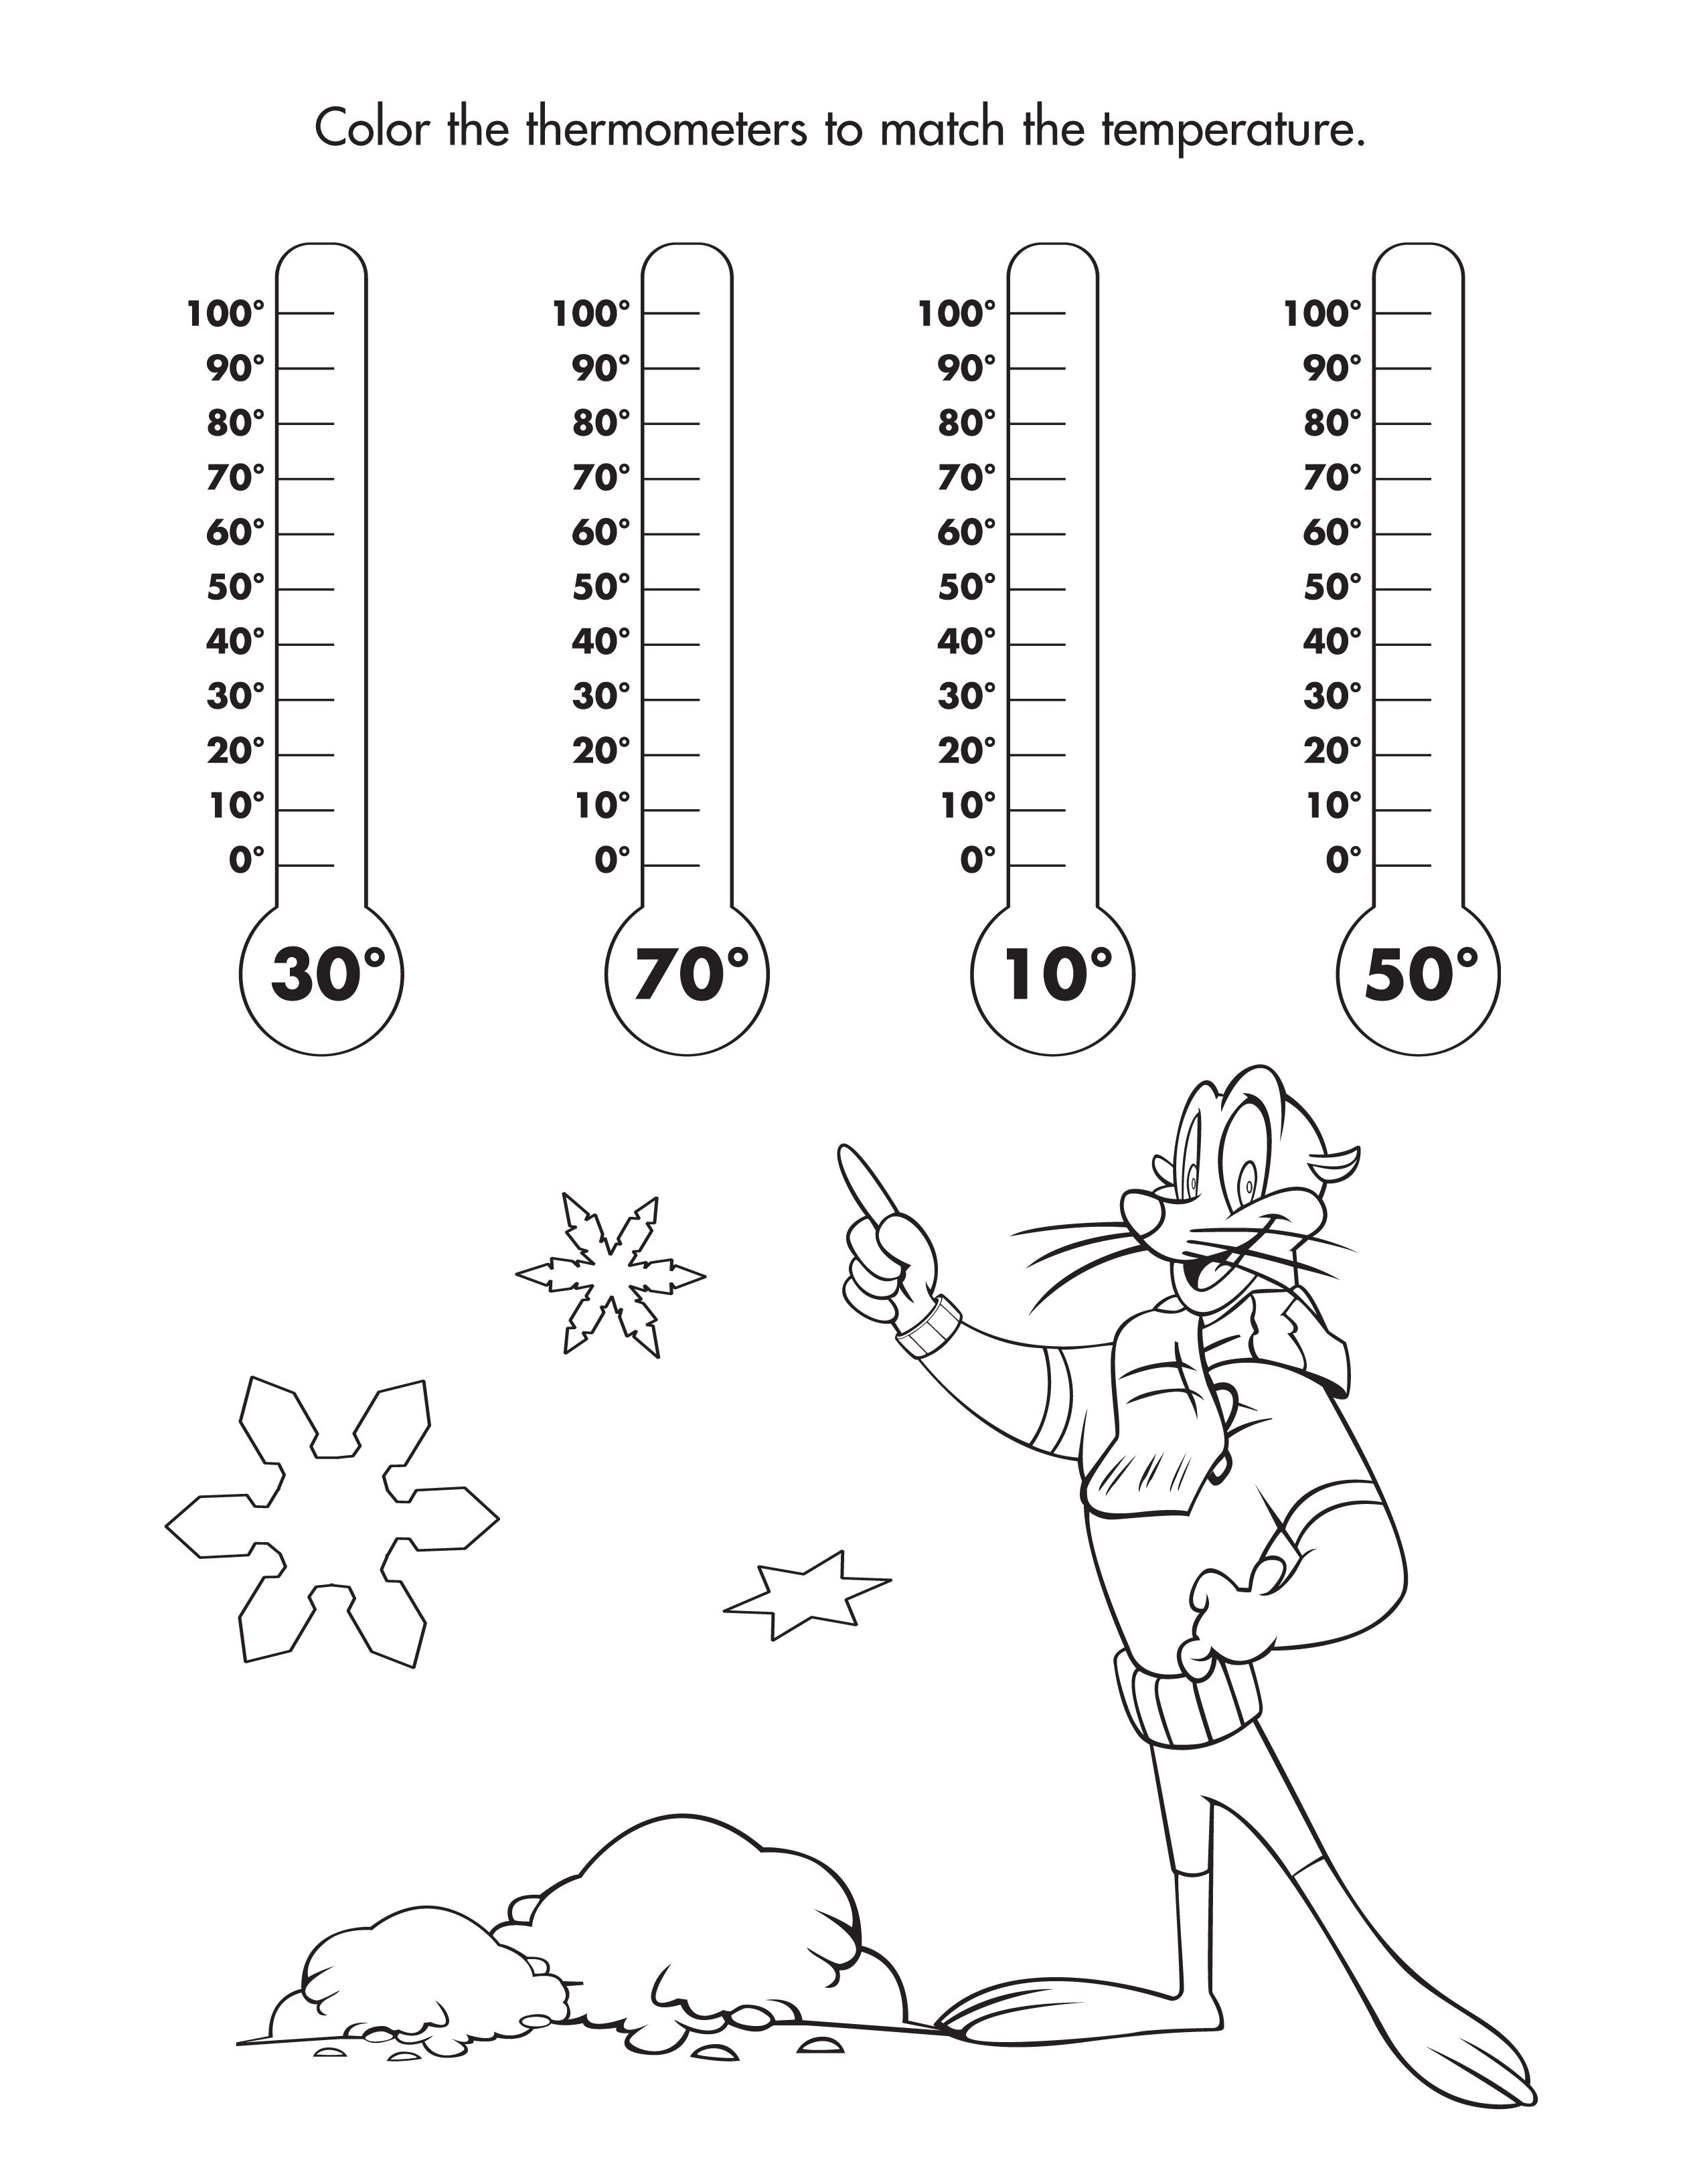 Color the thermometers with the correct temperature!